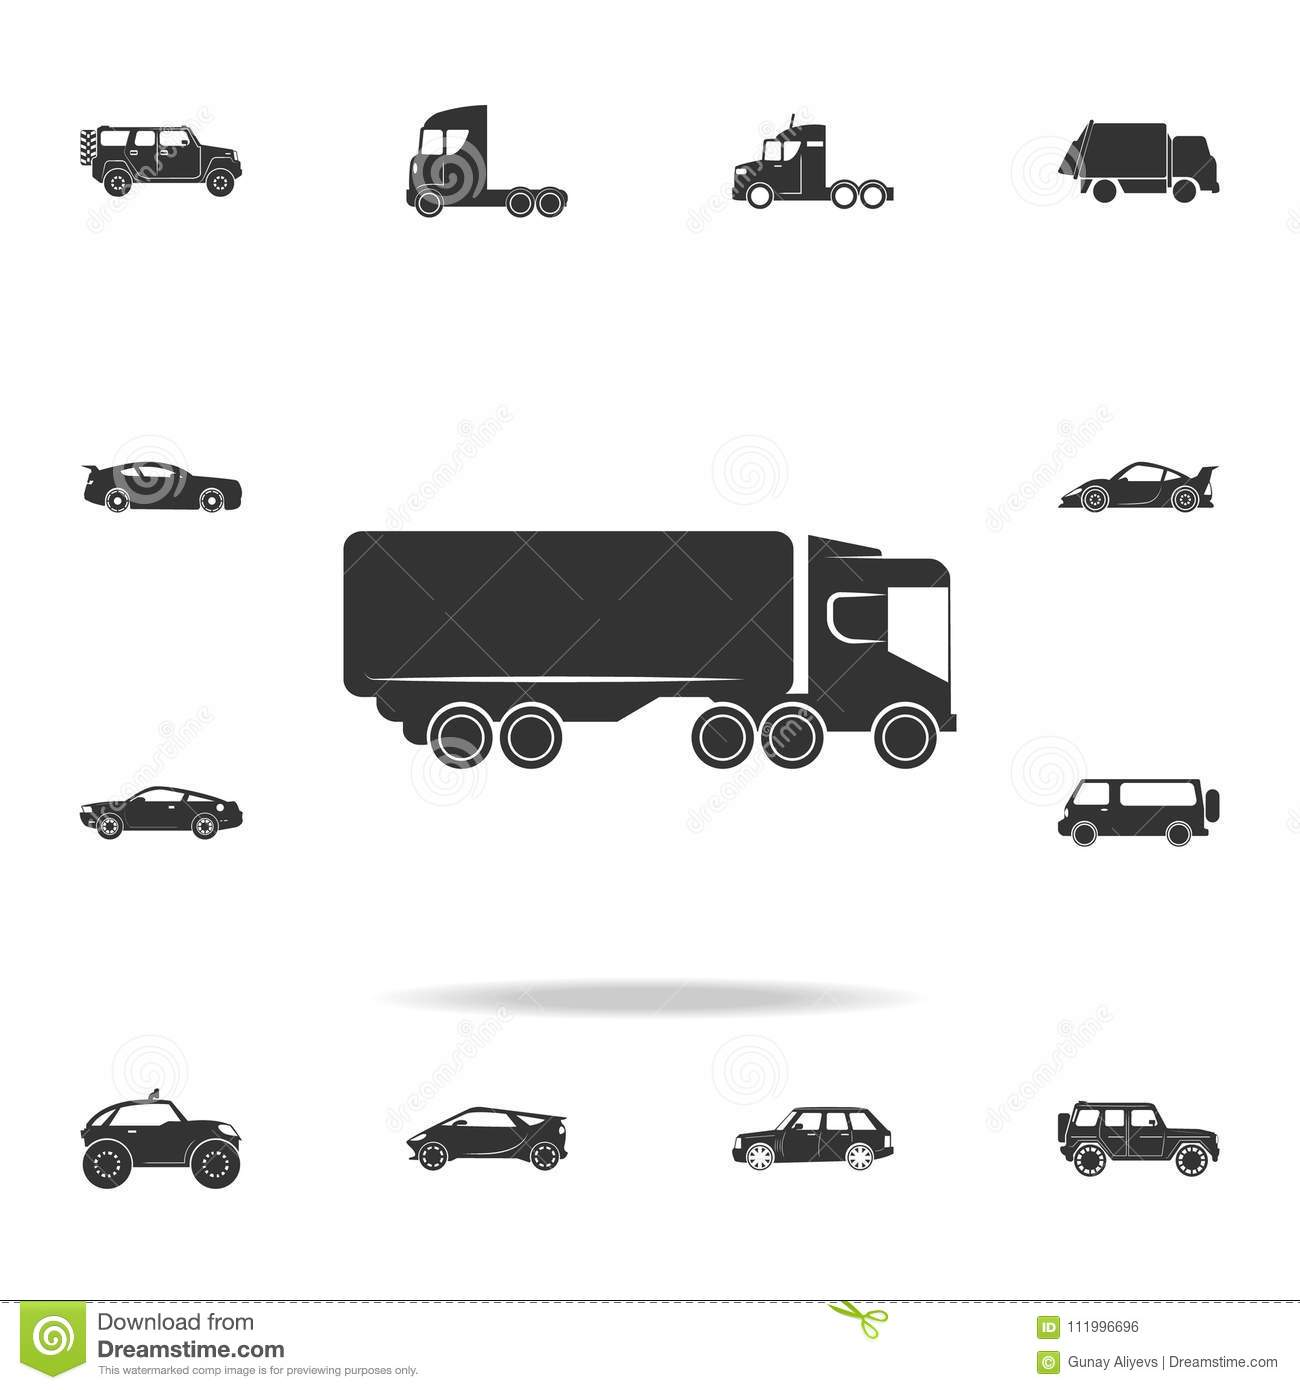 lorry with a trailer icon. Detailed set of transport icons. Premium quality graphic design. One of the collection icons for websit